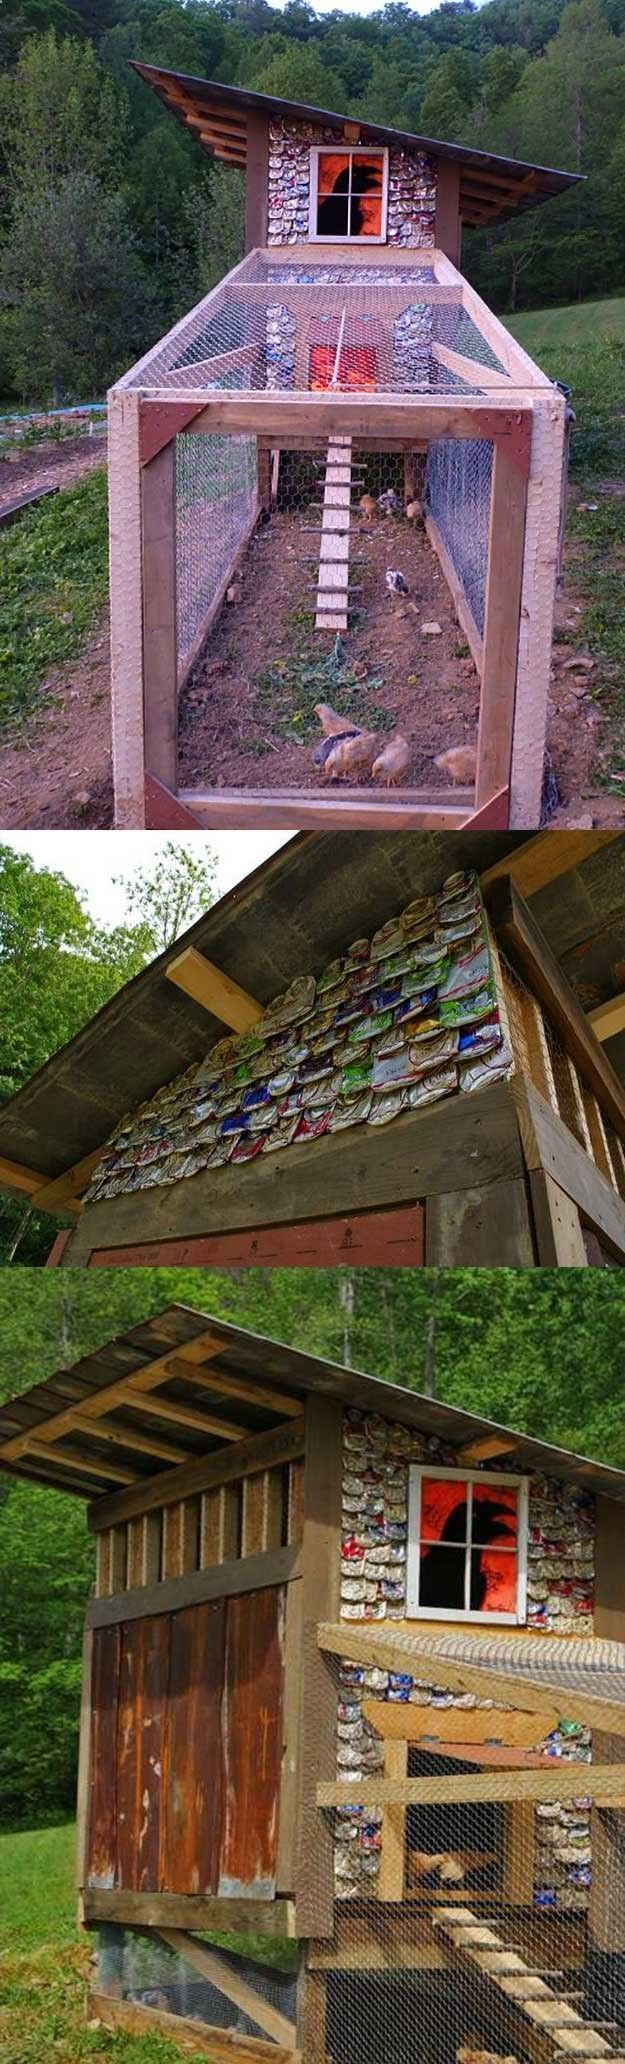 Chicken Coop idea with beer can shingles | 21 Awesome Chicken Coop Designs and Ideas | chicken coops, chicken coop designs, chicken coop ideas, building a chicken coop, diy chicken coop, backyard chicken coop, portable chicken coop, how to make a chicken coop, cheap chicken coop, small chicken coop, pallet chicken coop, urban chicken coop, a frame chicken coop #urbanchickens #chickencoopideas #chickencoopdiy